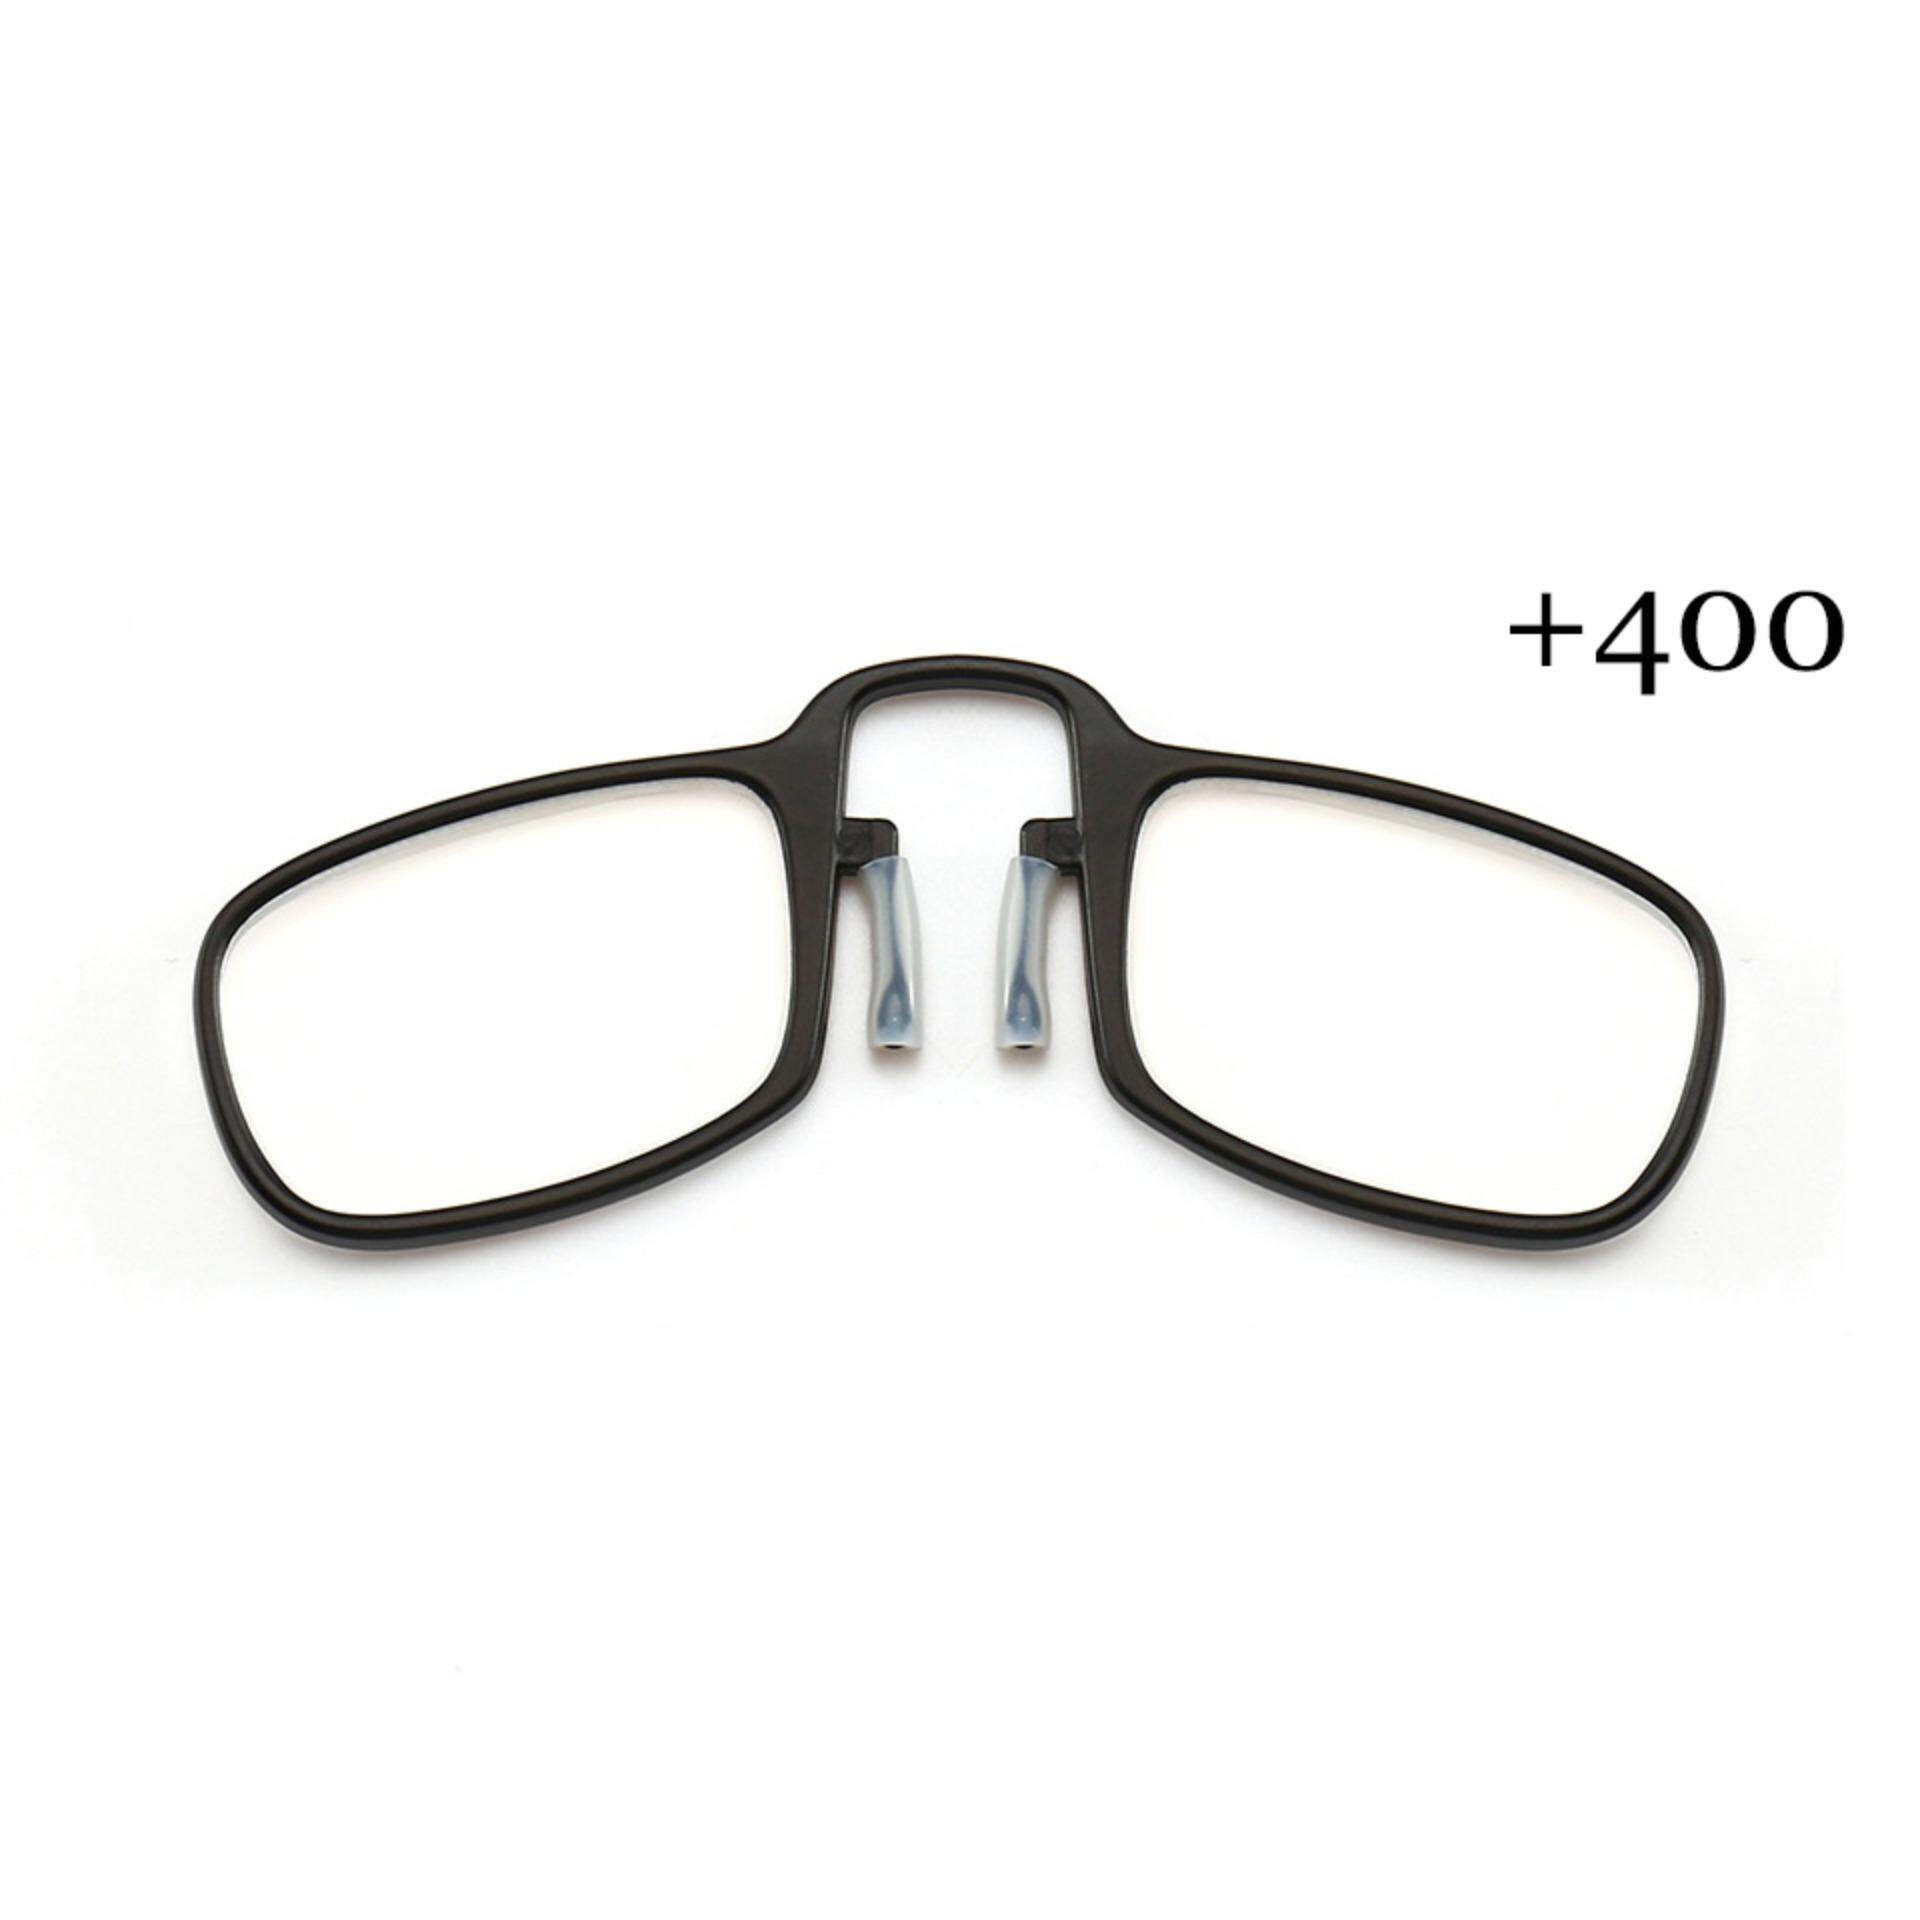 b8801e2a3321 2019 Fashion Clip Nose Portable Personality Old Light Mirror Elderly  Exclusive Reading Glasses Black 400